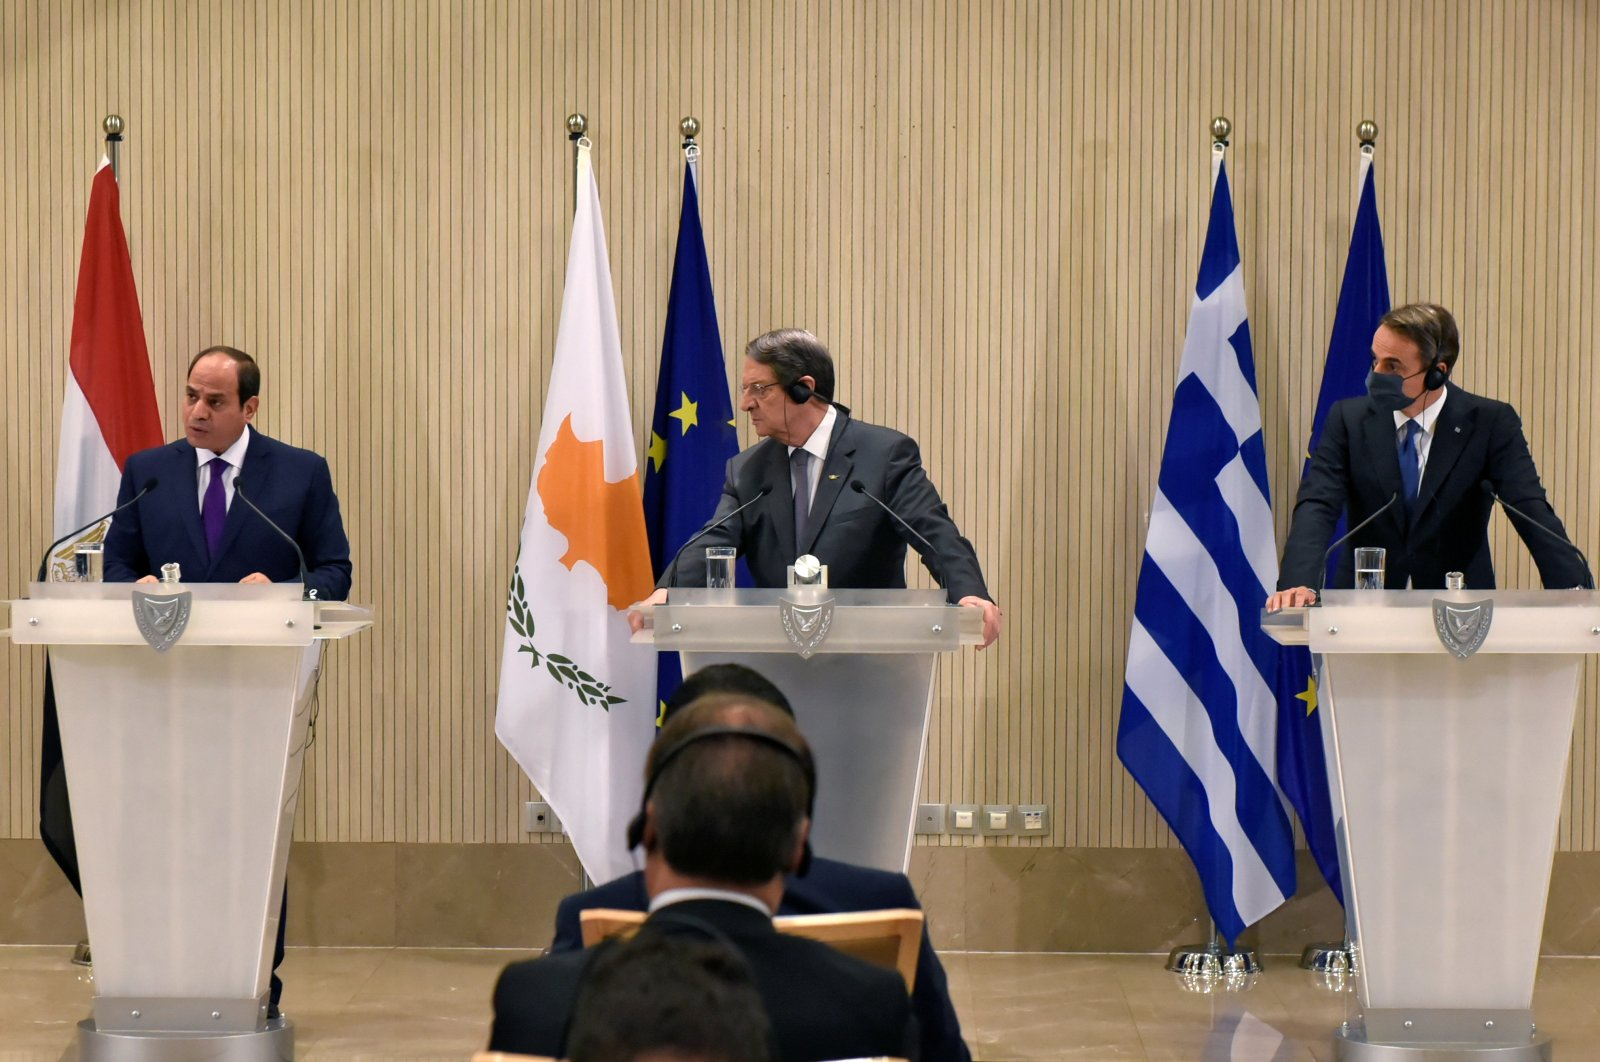 Greek Cypriot leader Nicos Anastasiades, Greek Prime Minister Kyriakos Mitsotakis and Egyptian President Abdel-Fattah el-Sissi are seen during a news conference after a trilateral summit in Nicosia, Greek Cyprus, Oct. 21, 2020. (Reuters Photo)